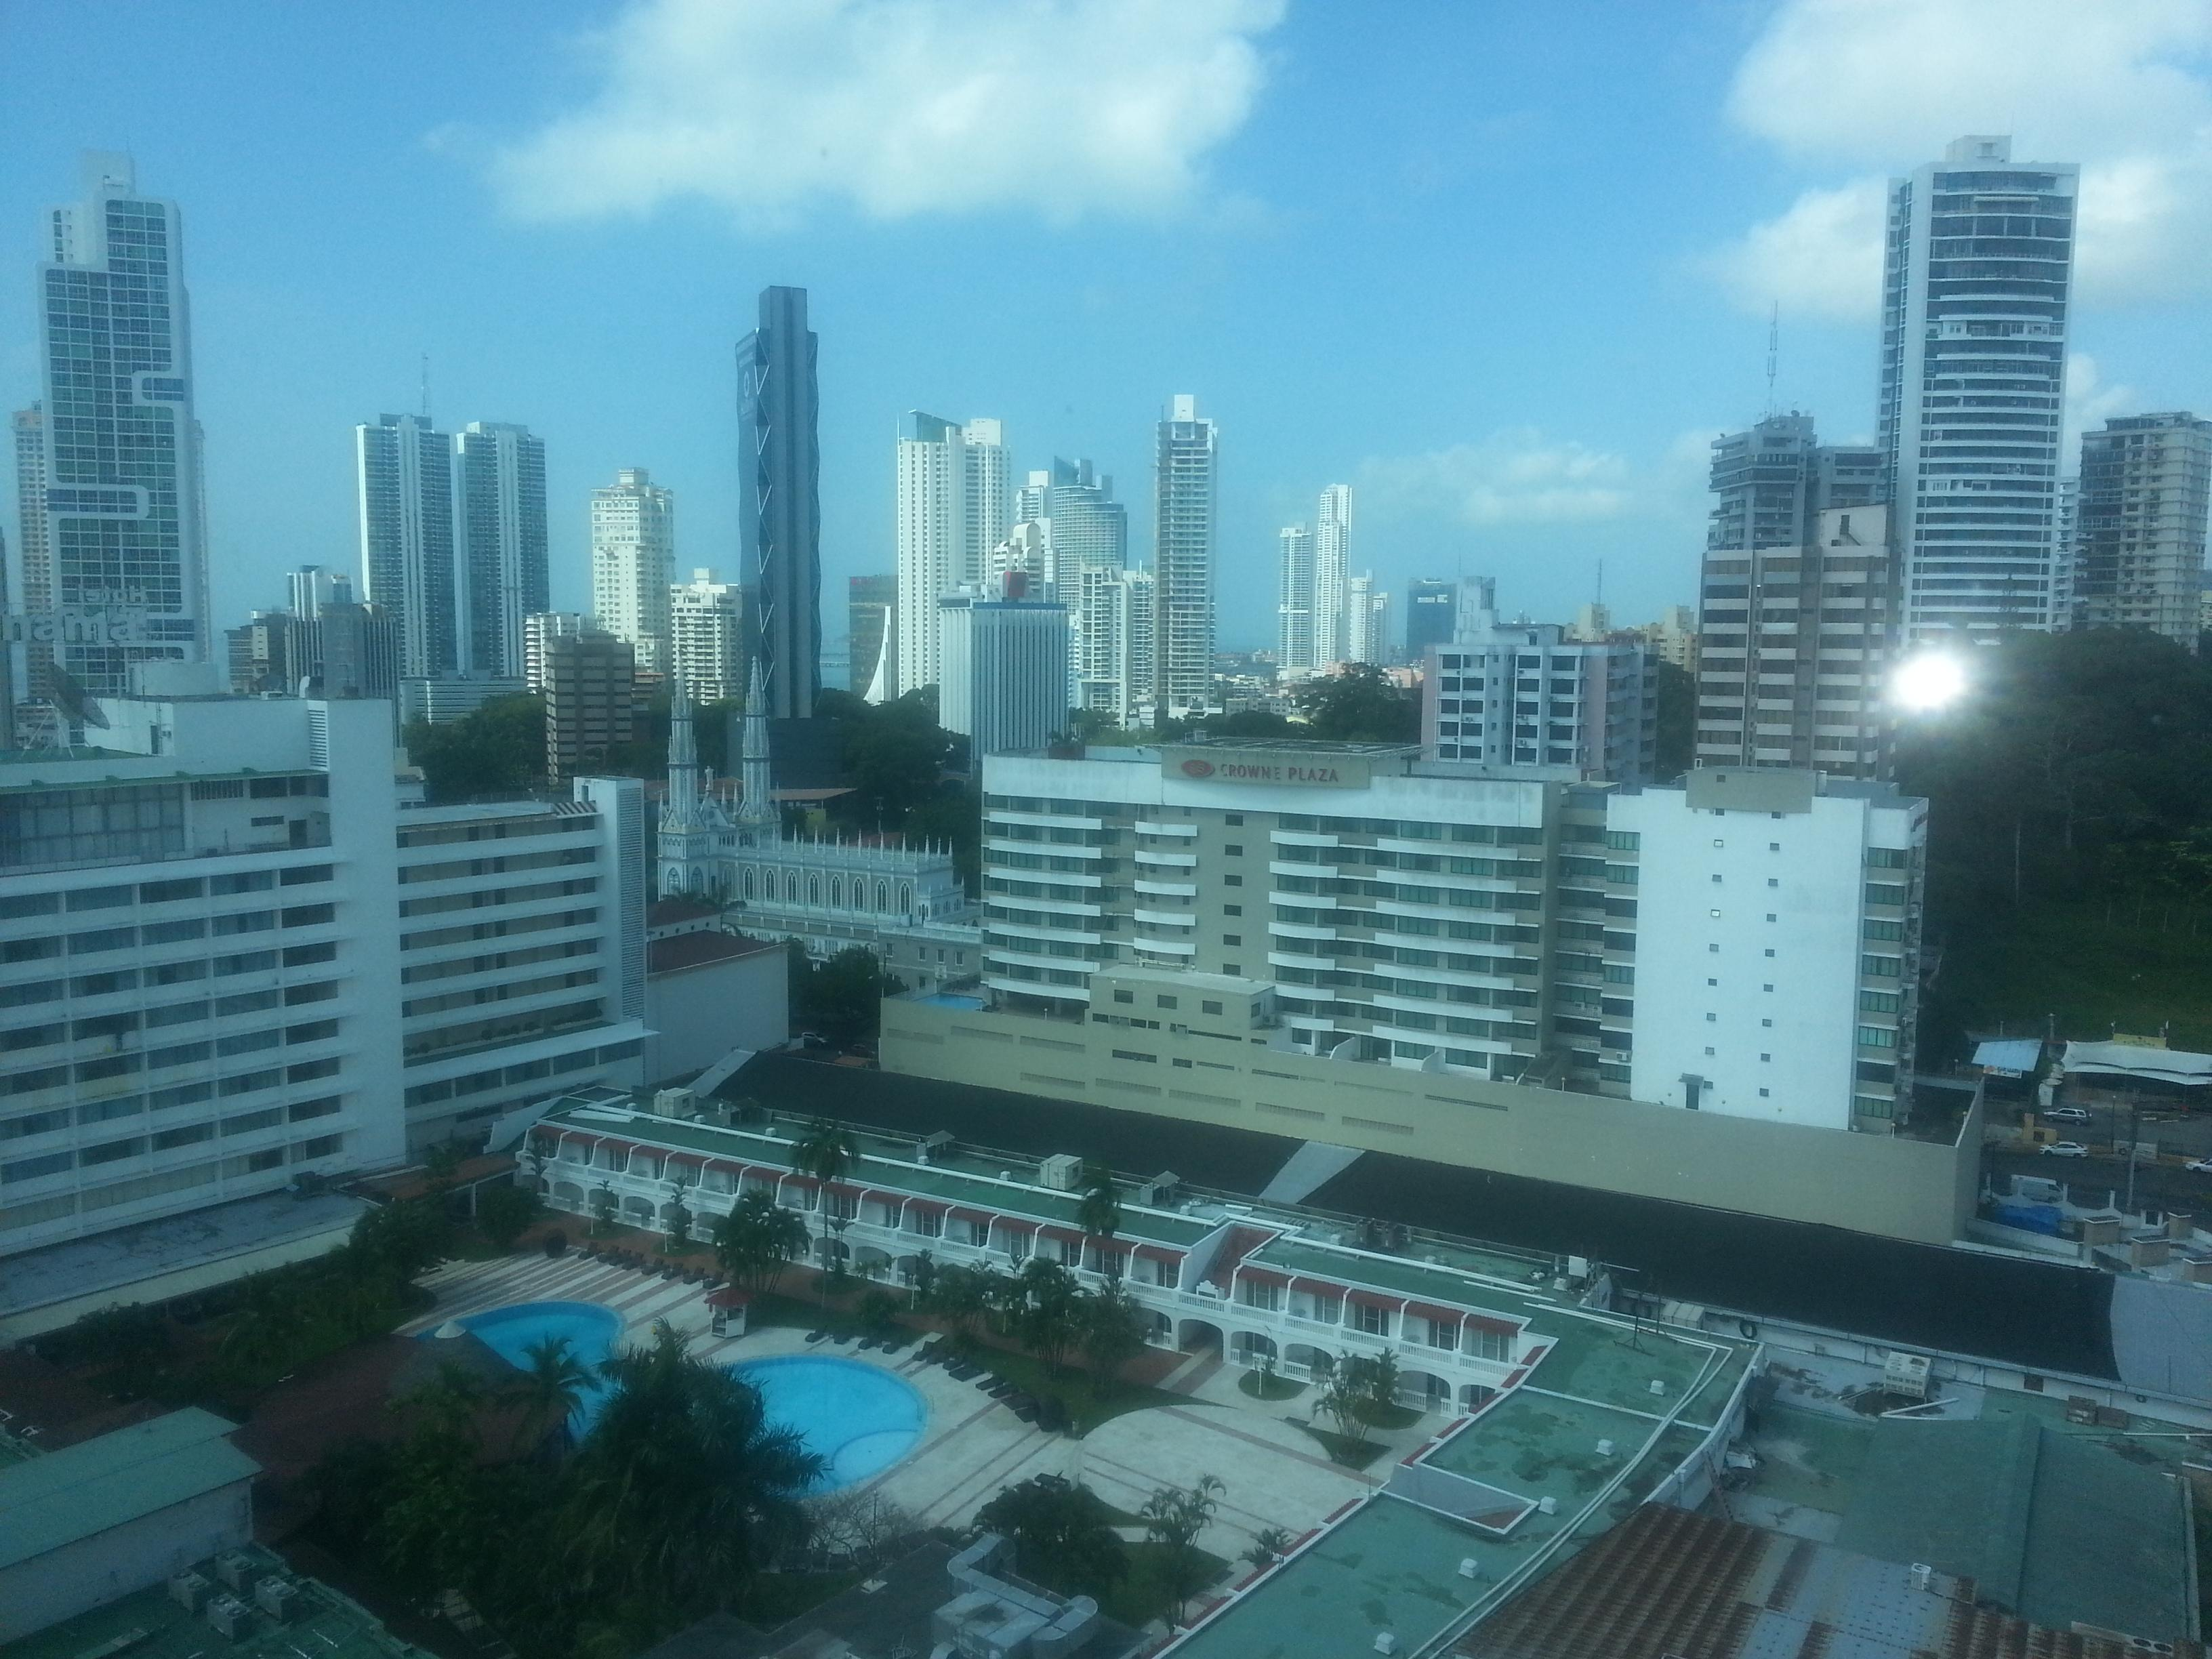 Panama City from my hotel window.